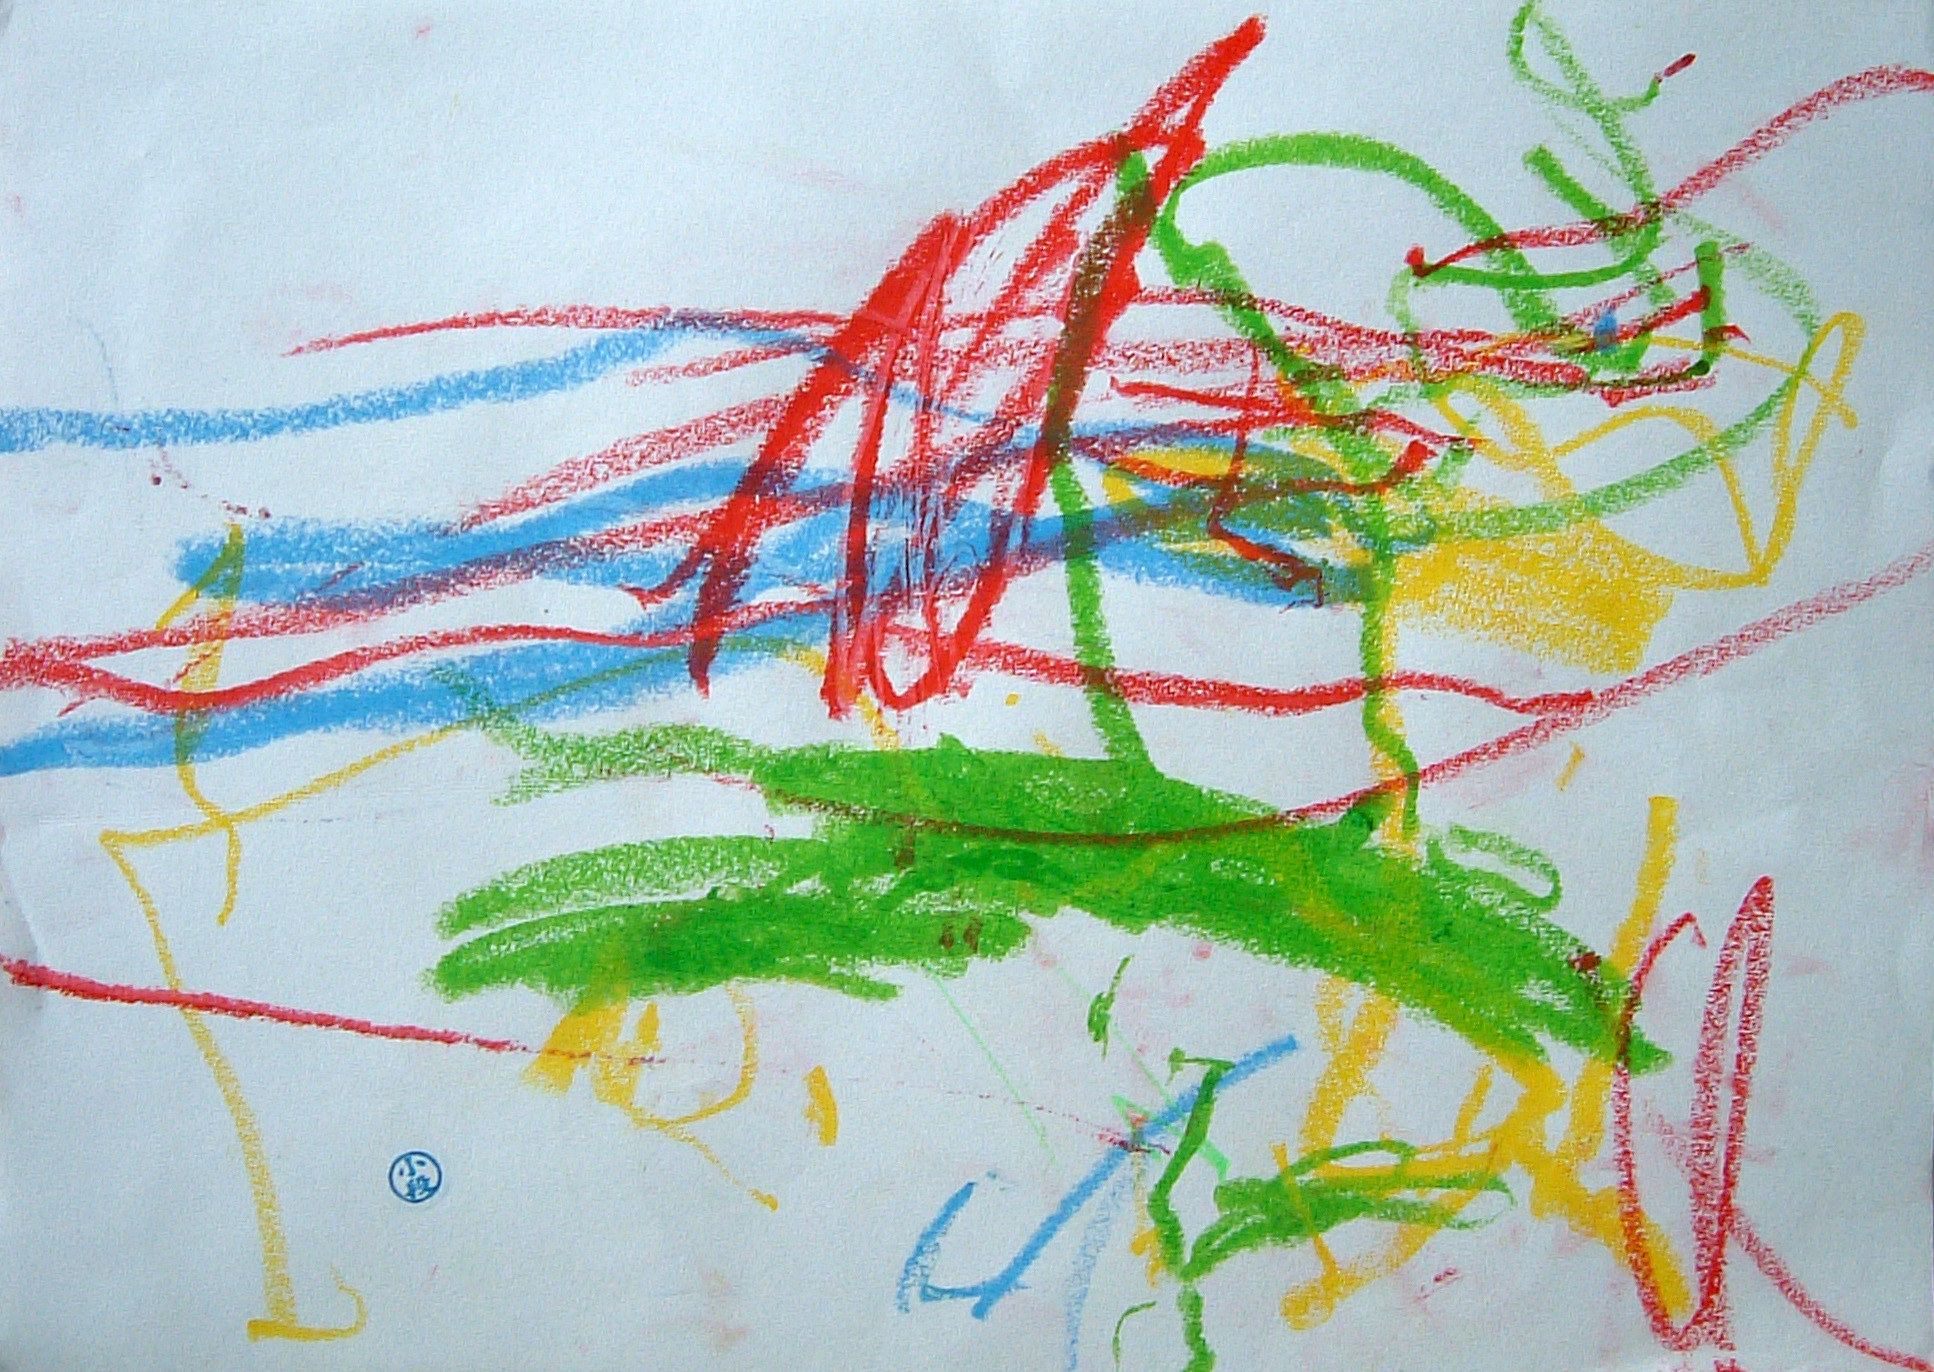 Children's drawings: what can we infer from them?